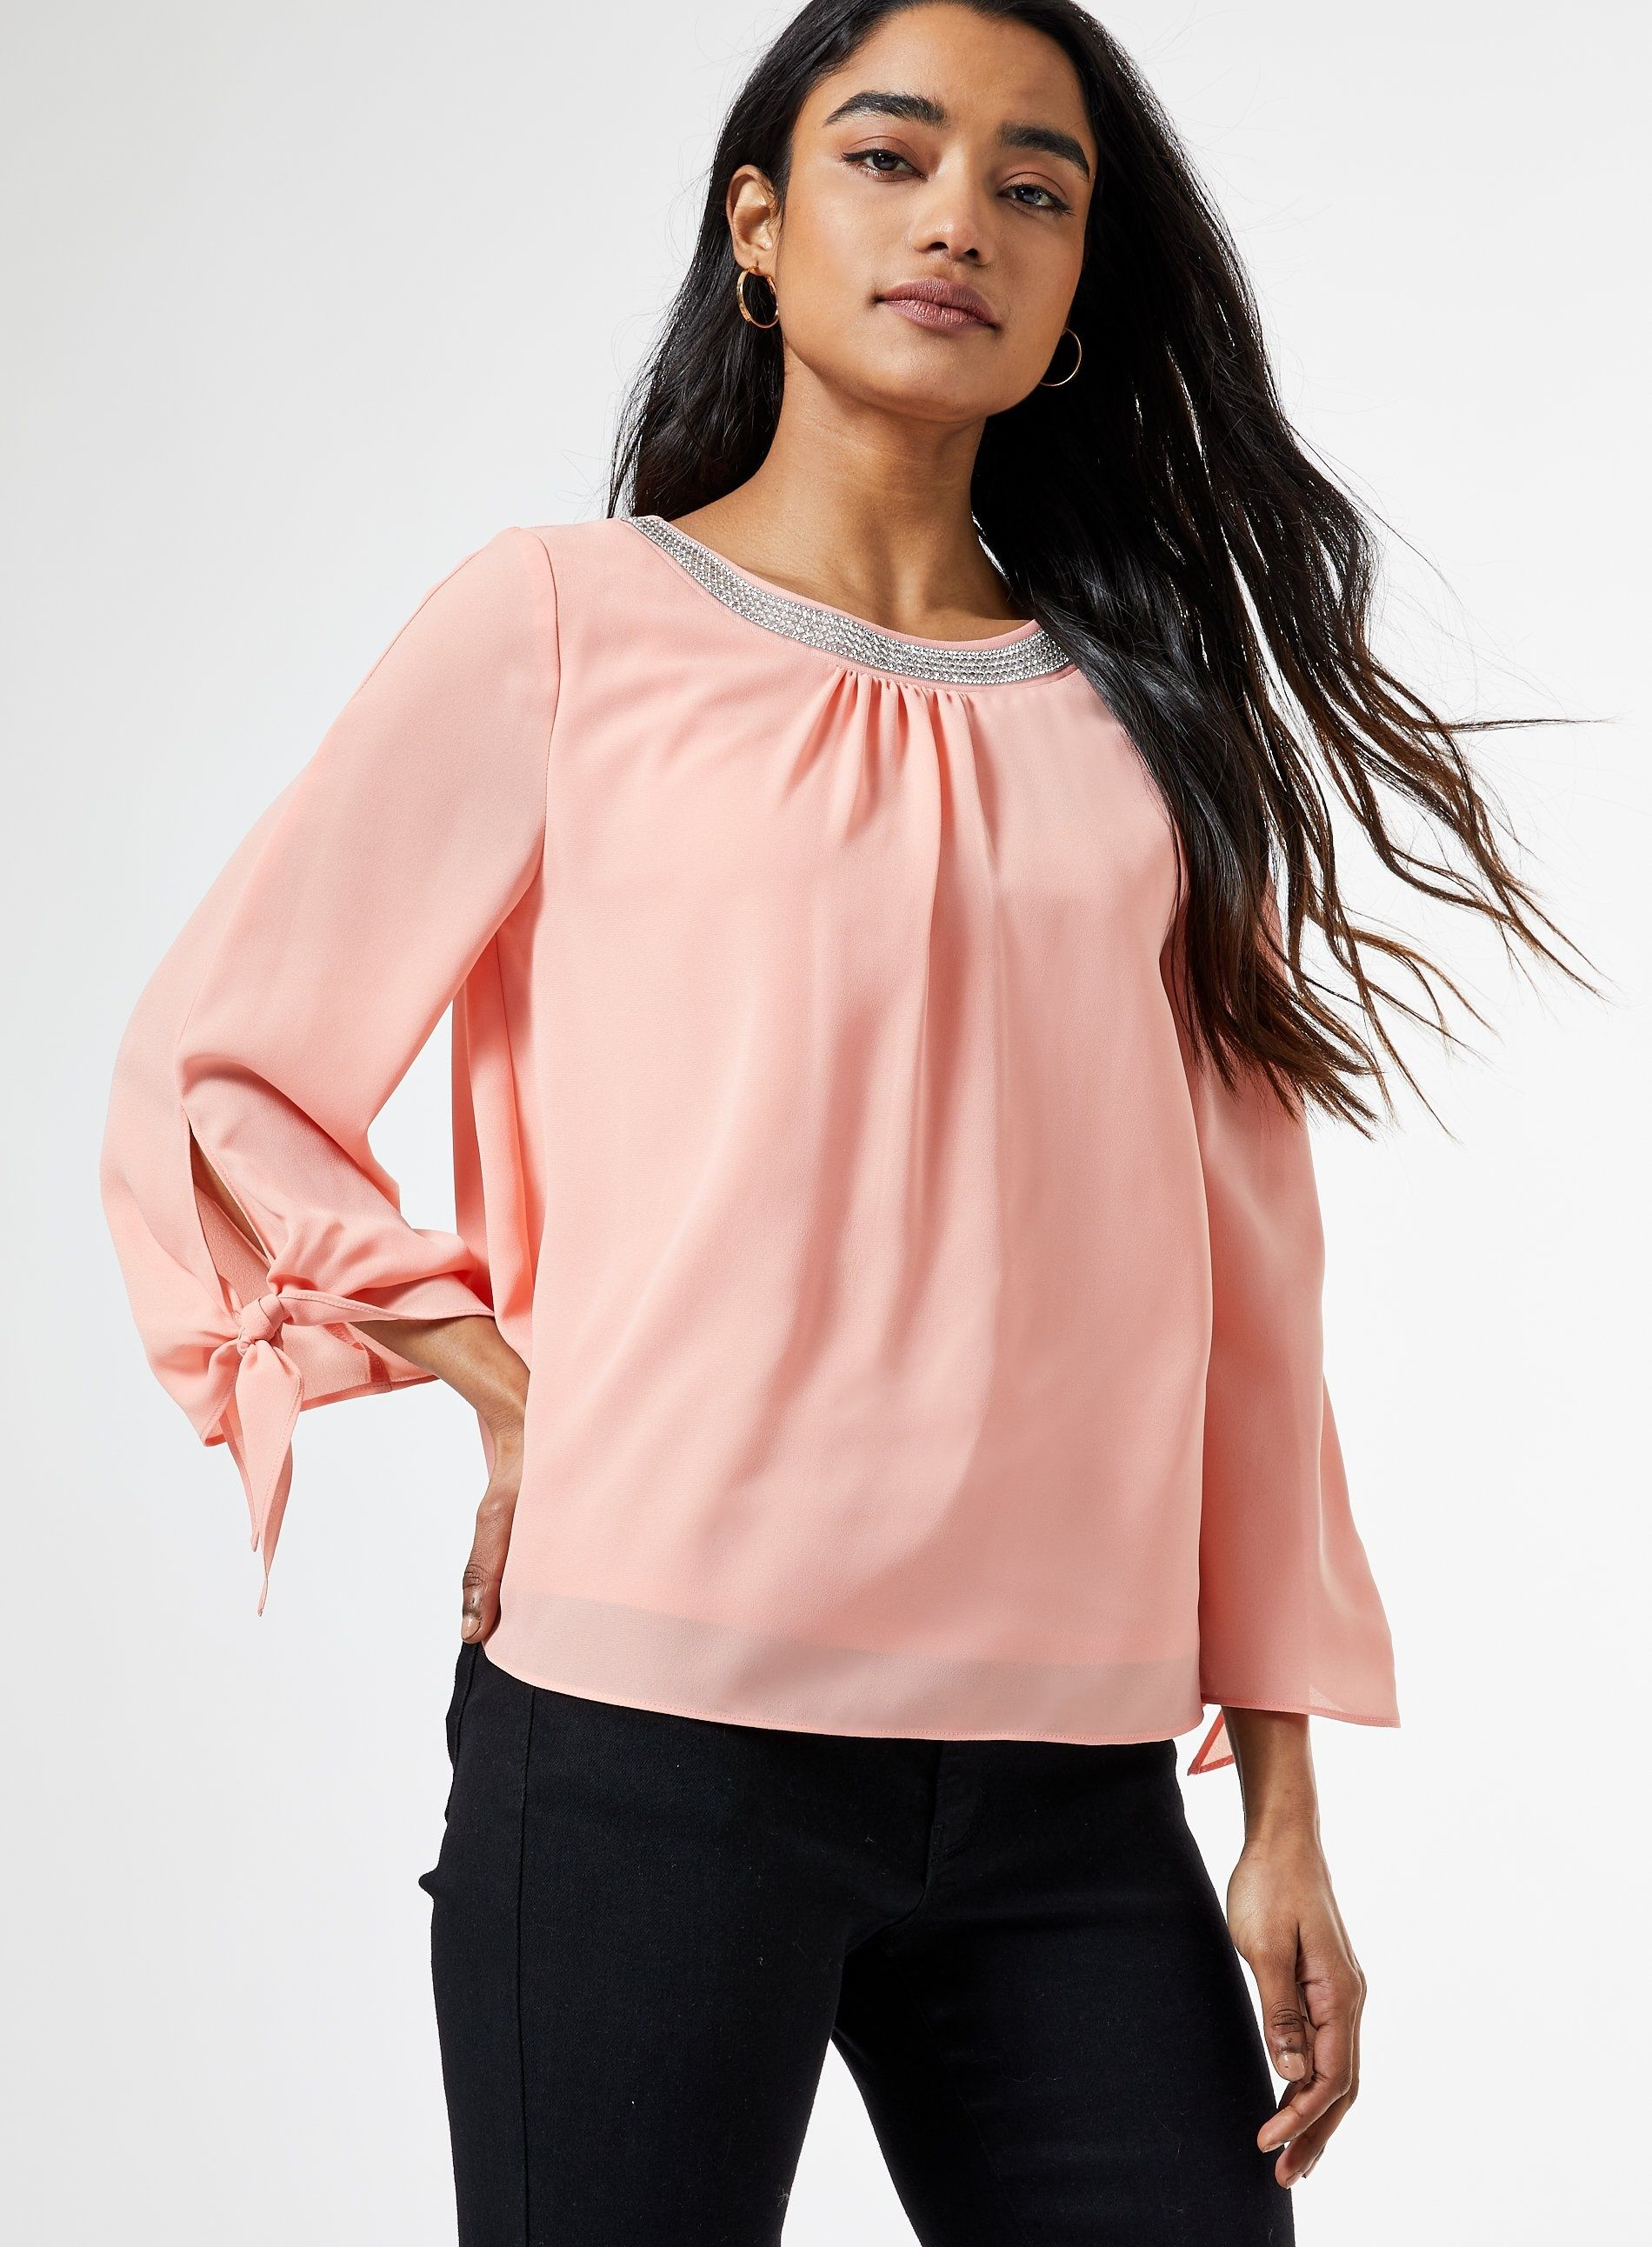 Dorothy Perkins Womens Petite Pink Embellished Neck Top 3/4 Sleeve Blouse